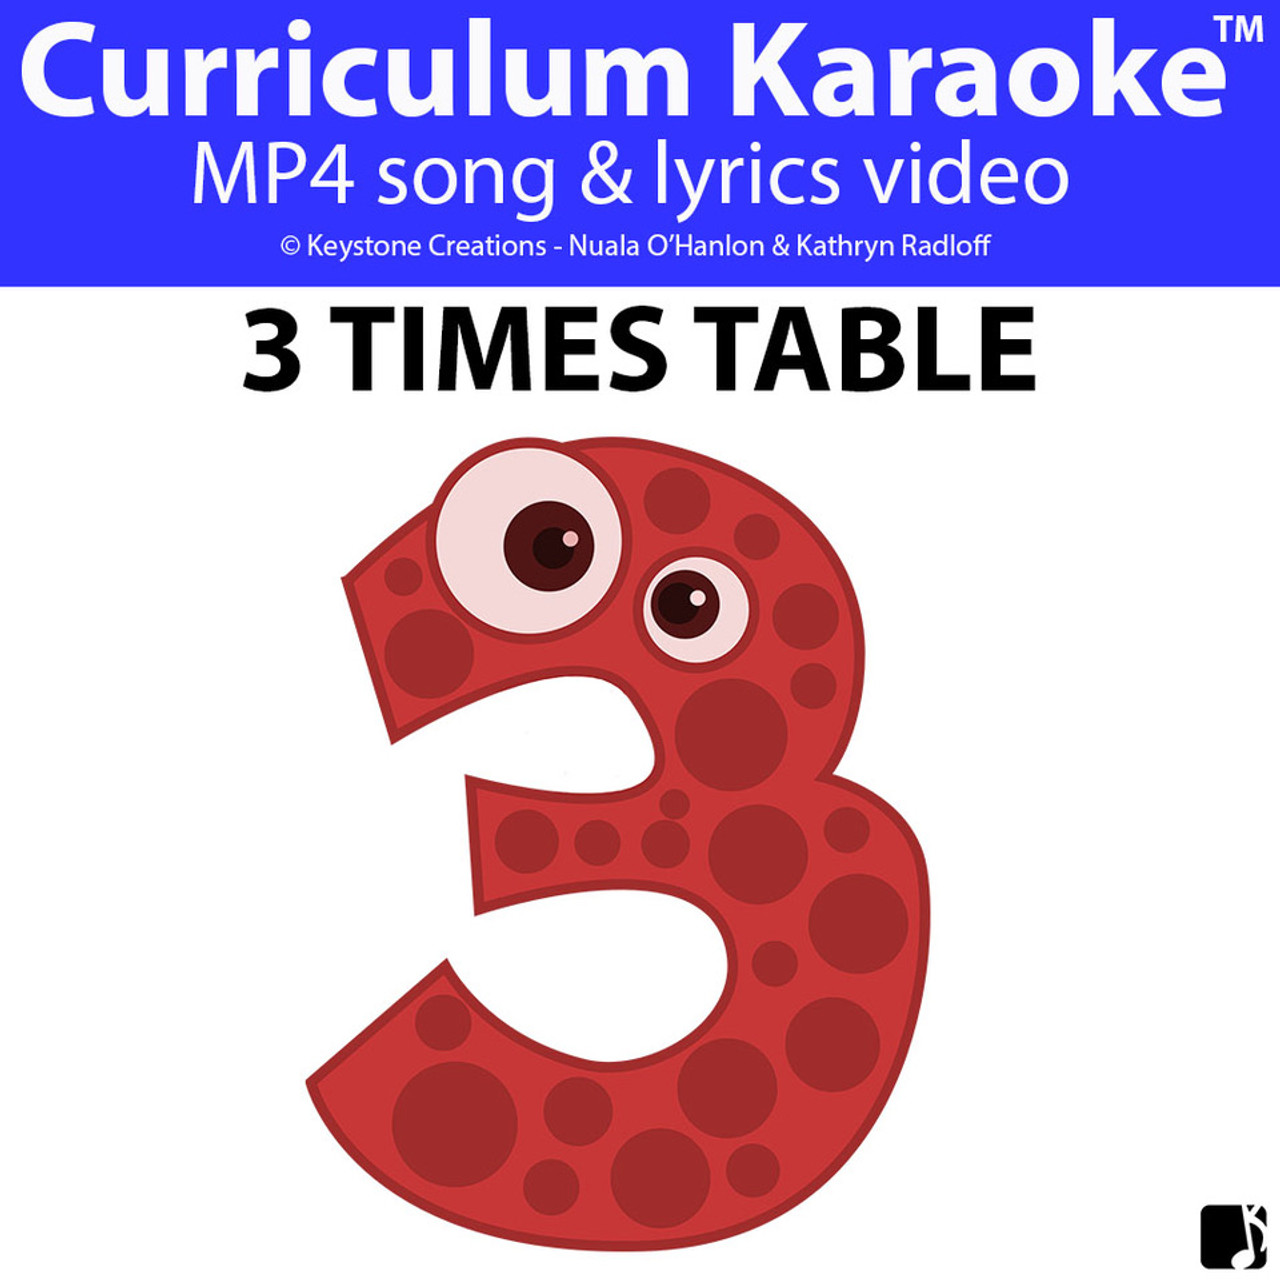 '3 TIMES TABLE' ~ Curriculum Song Video